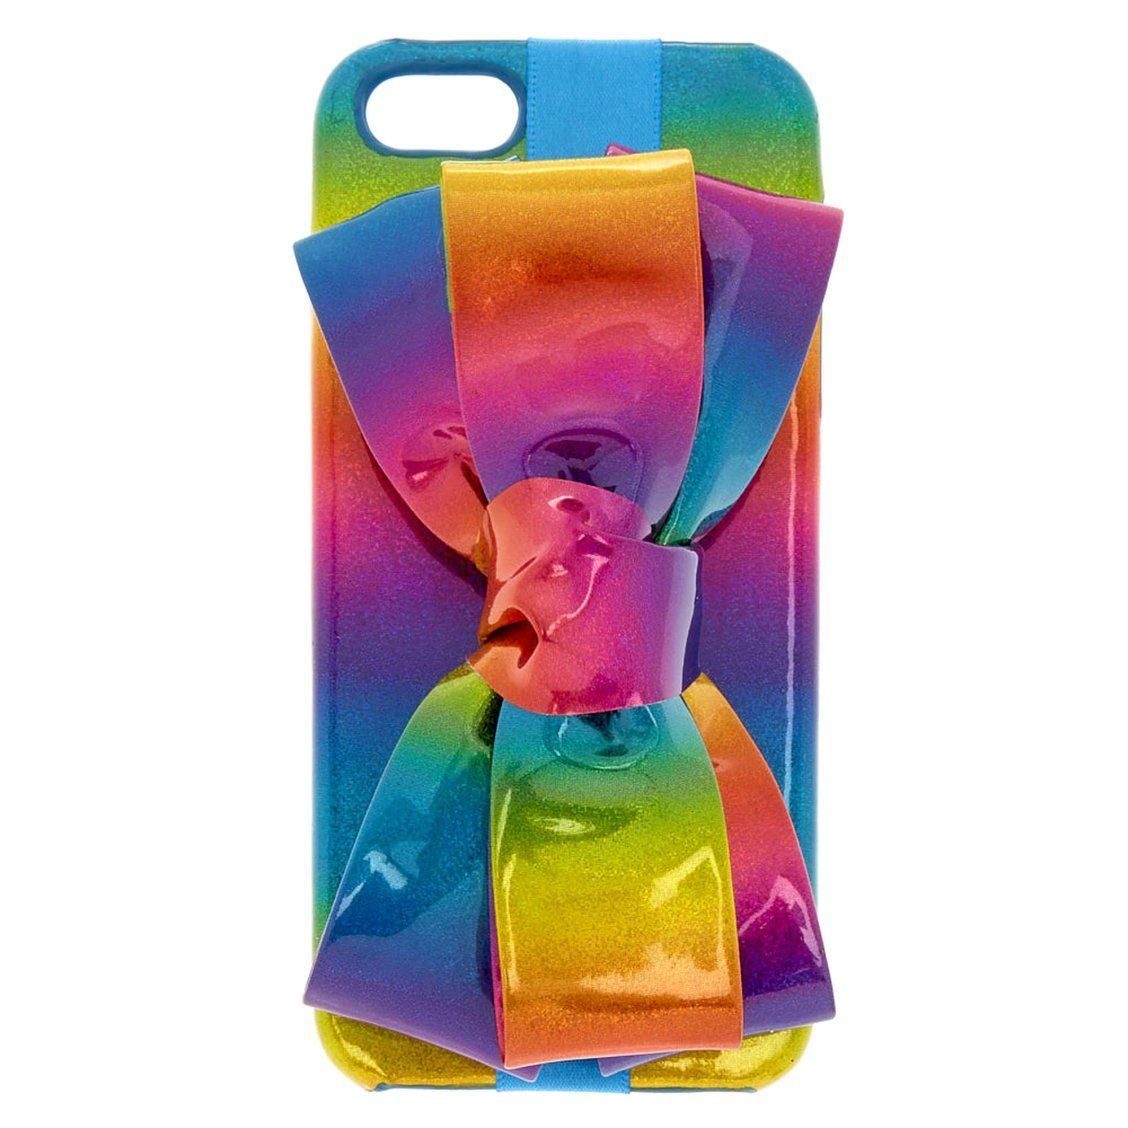 new concept 794aa 1c59e It's not a JoJo Siwa case but it's from Claire's and it totally ...